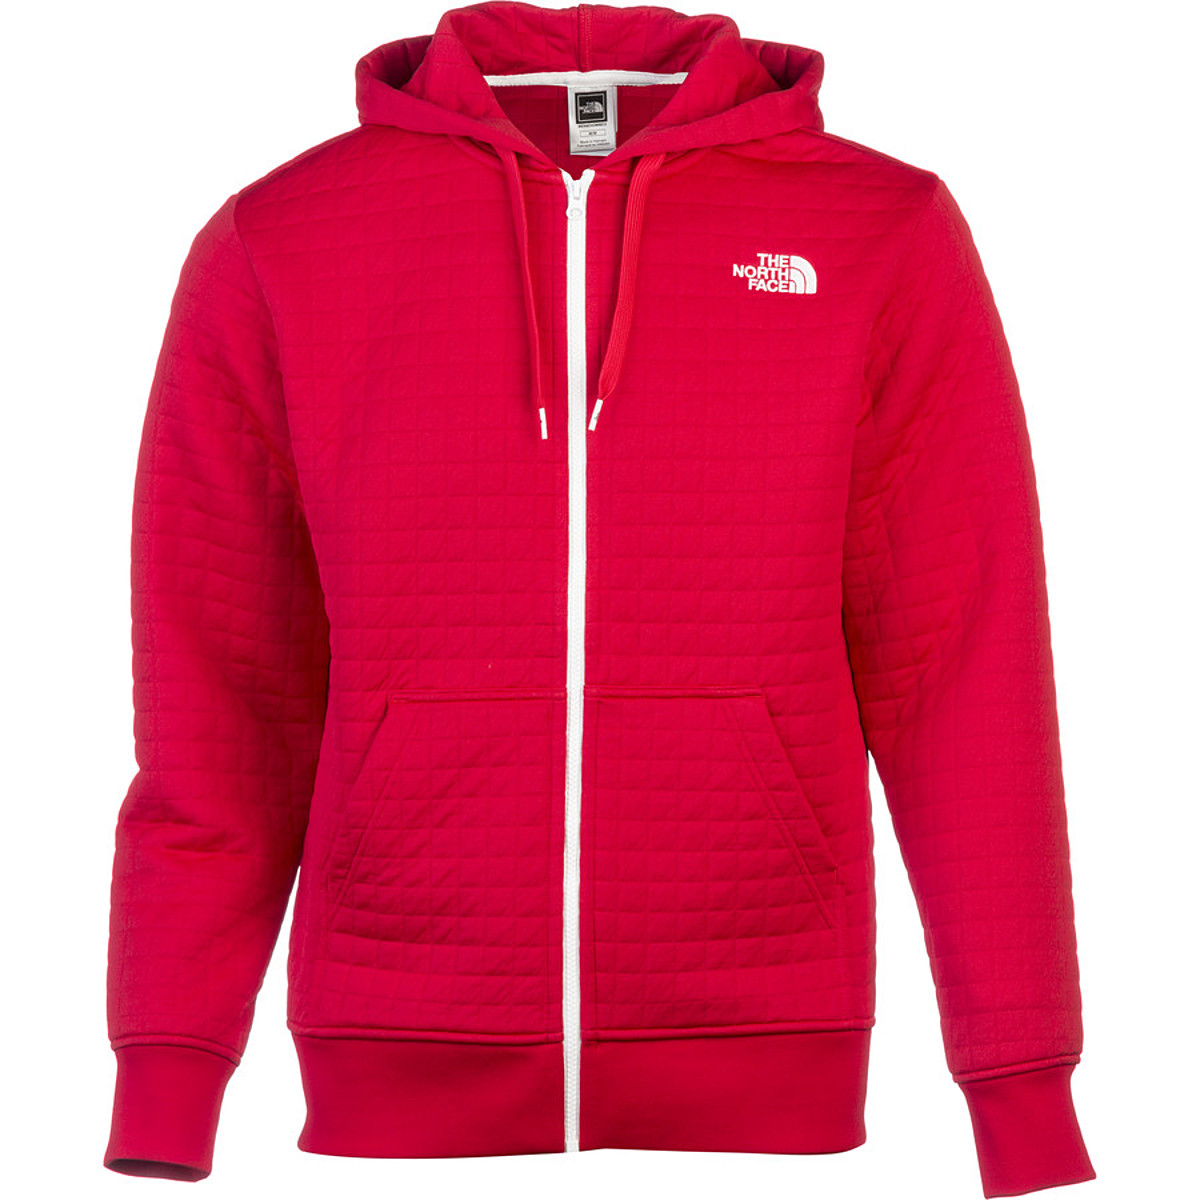 The North Face Slater Full Zip Hoodie